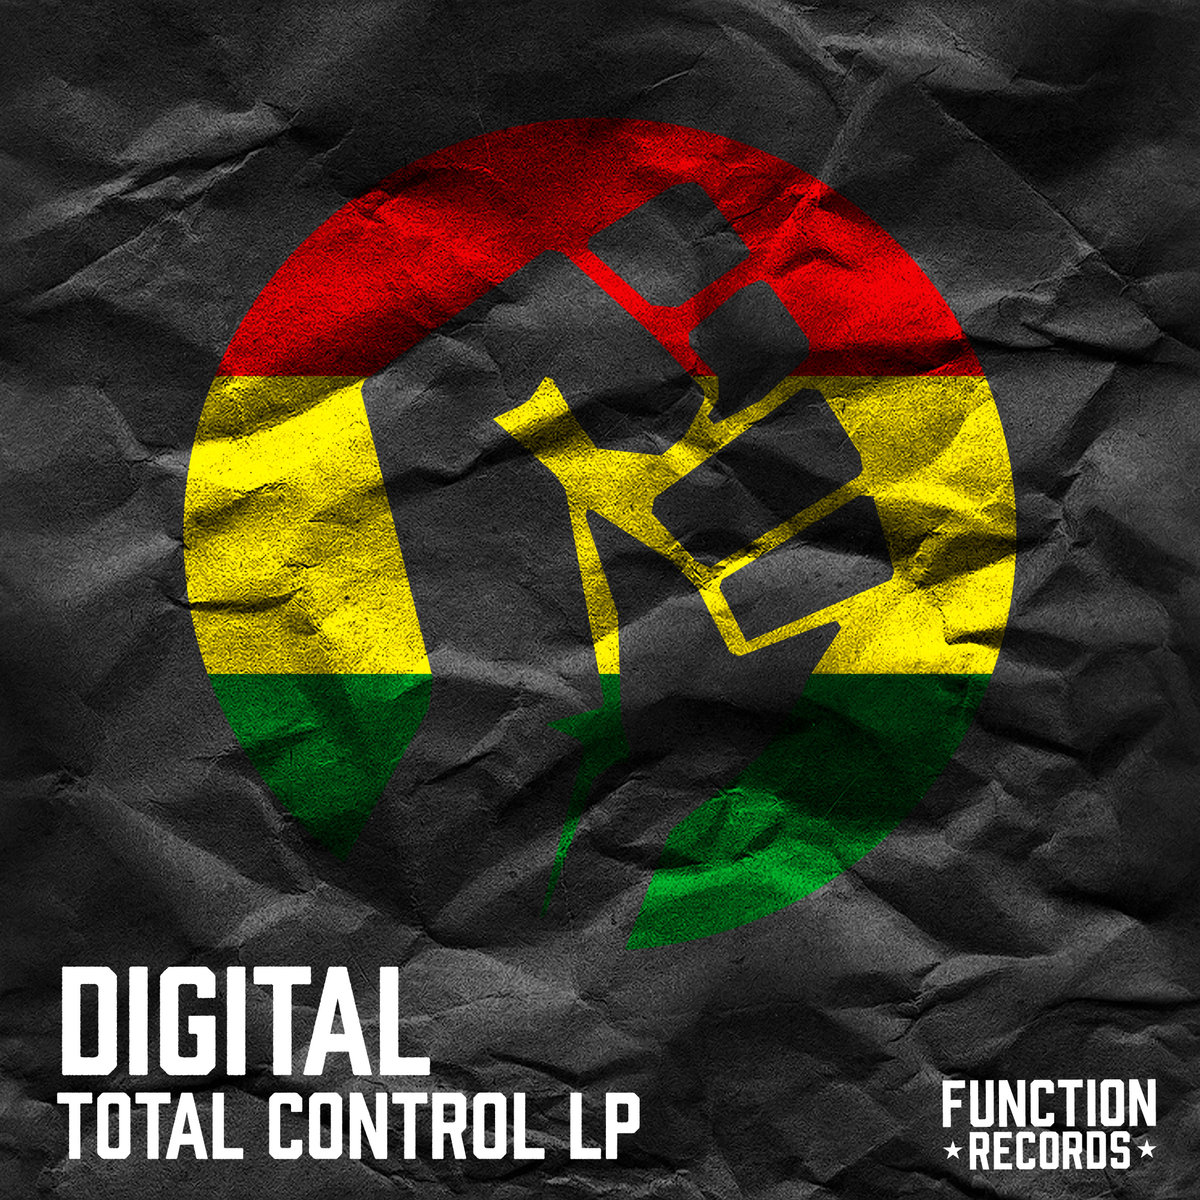 Digital Total Control LP